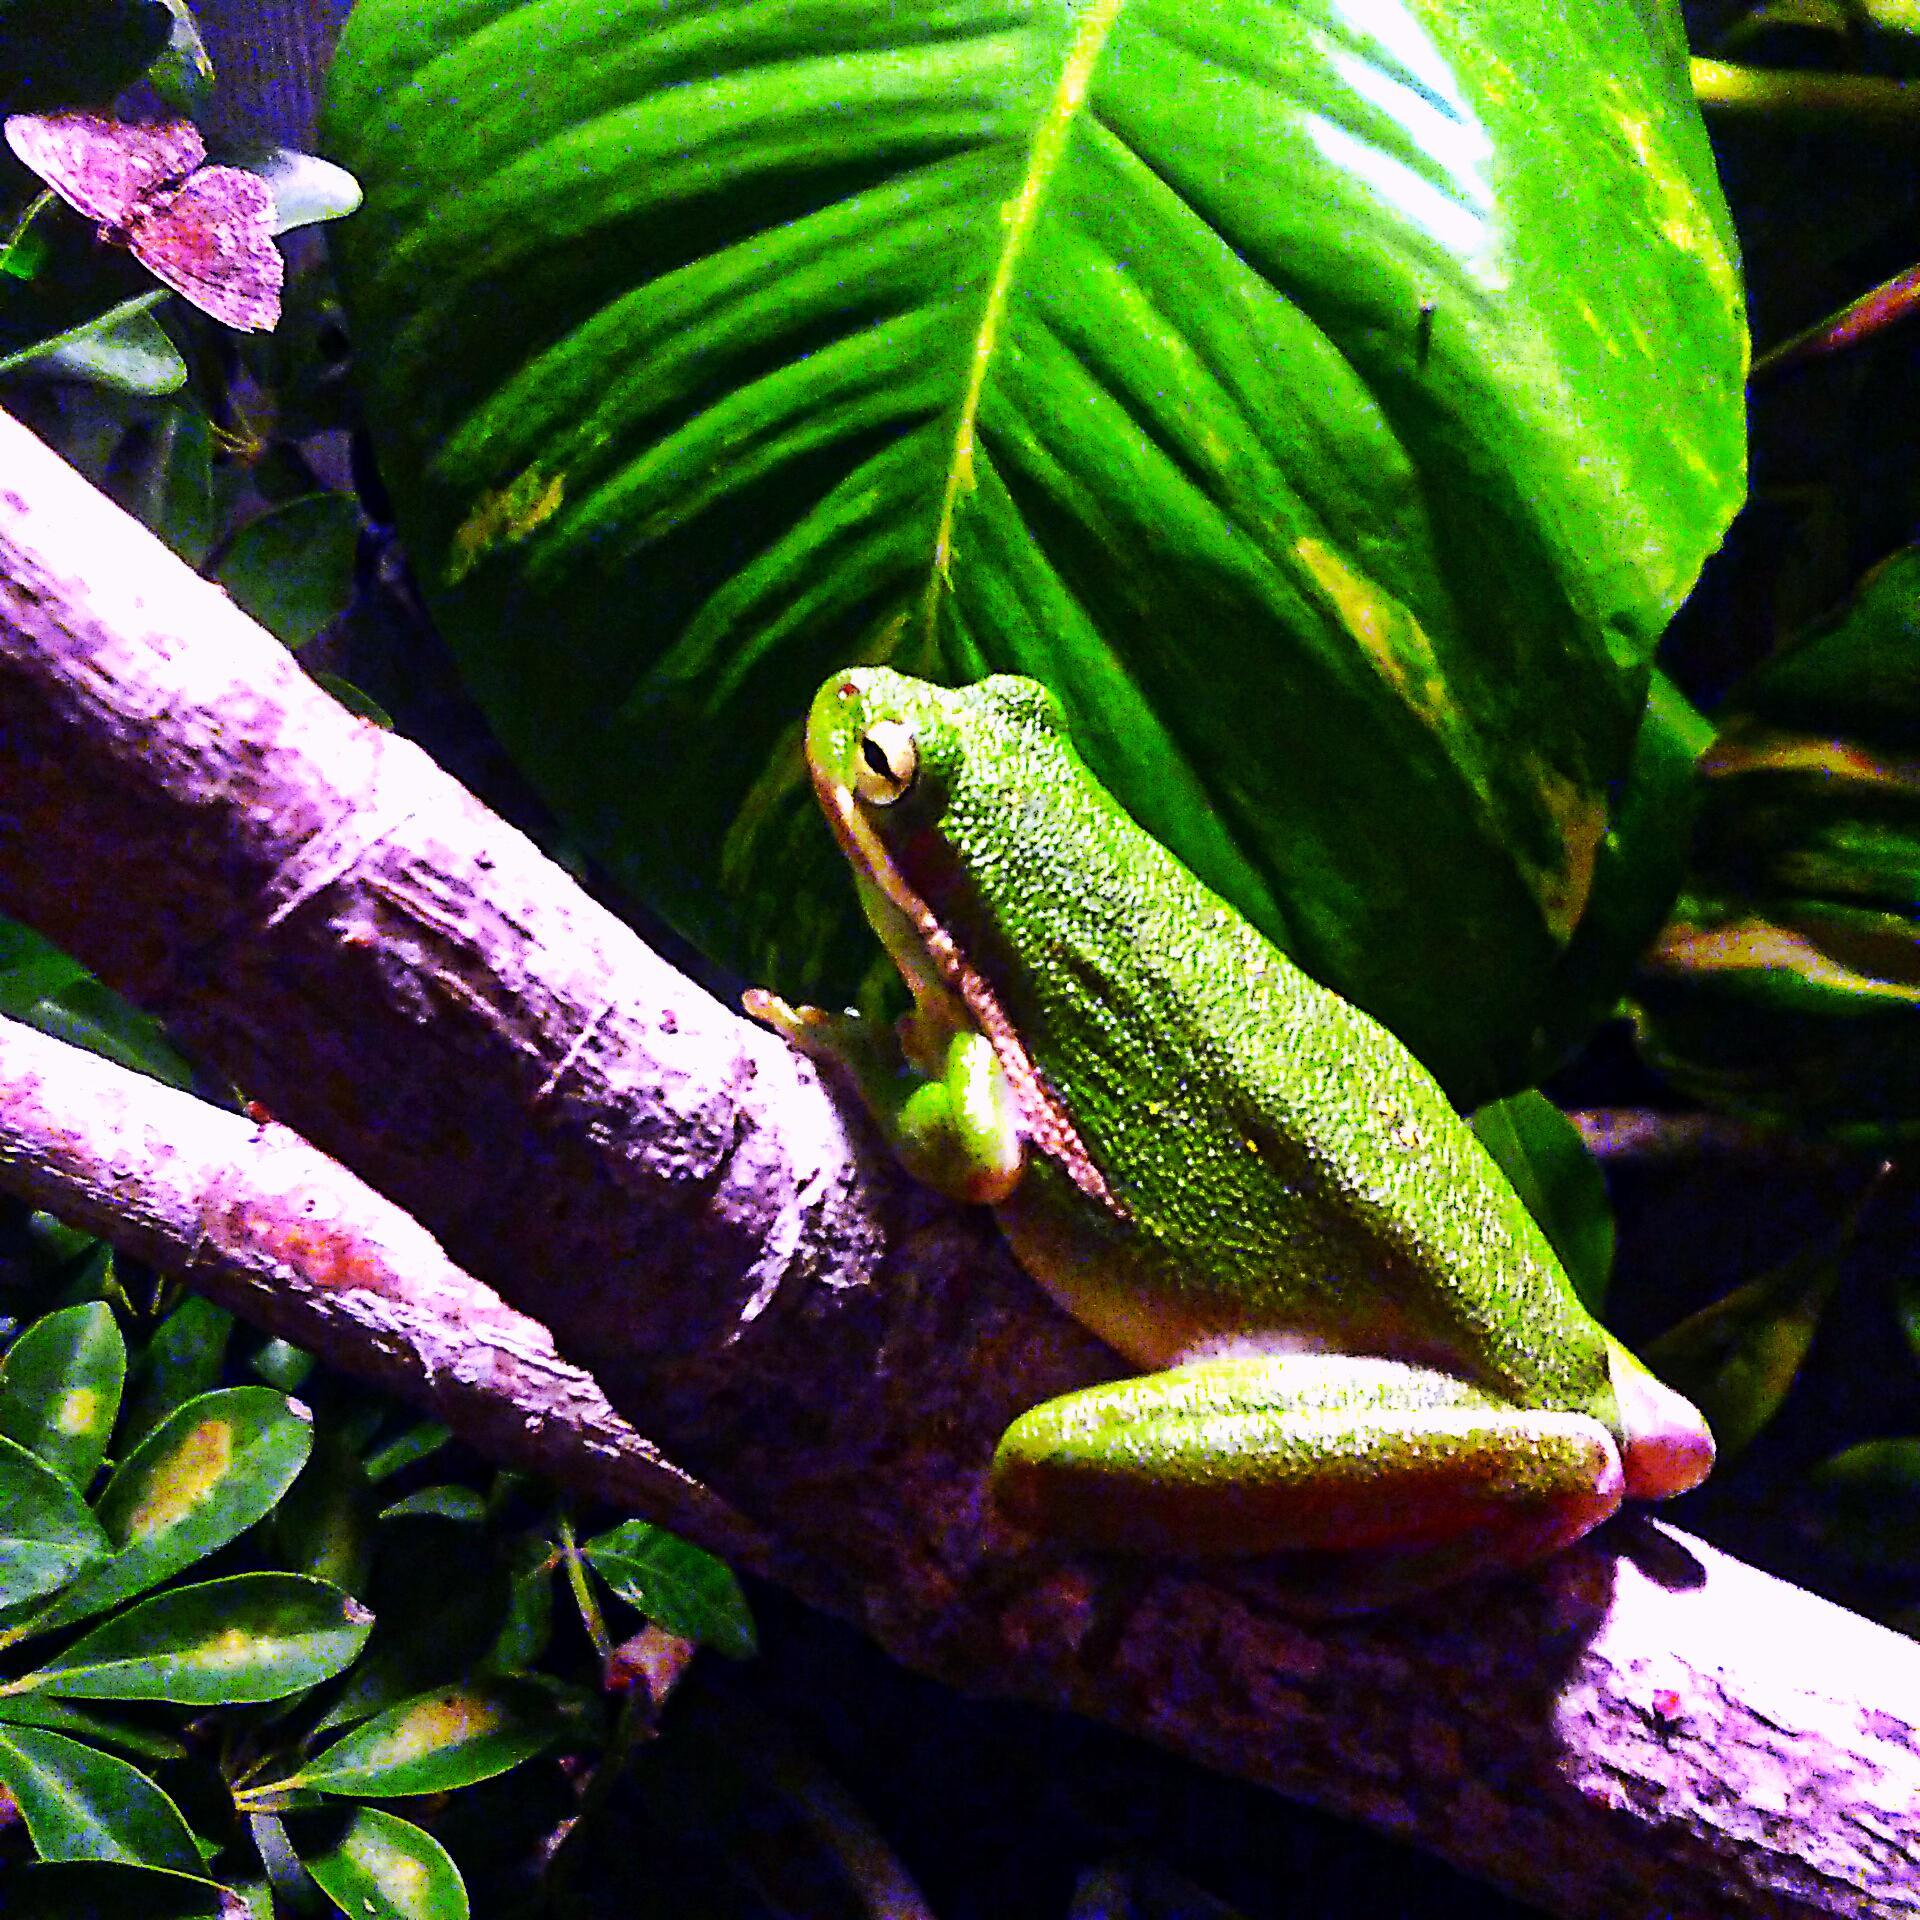 Green Tree Frog On A Branch At Night